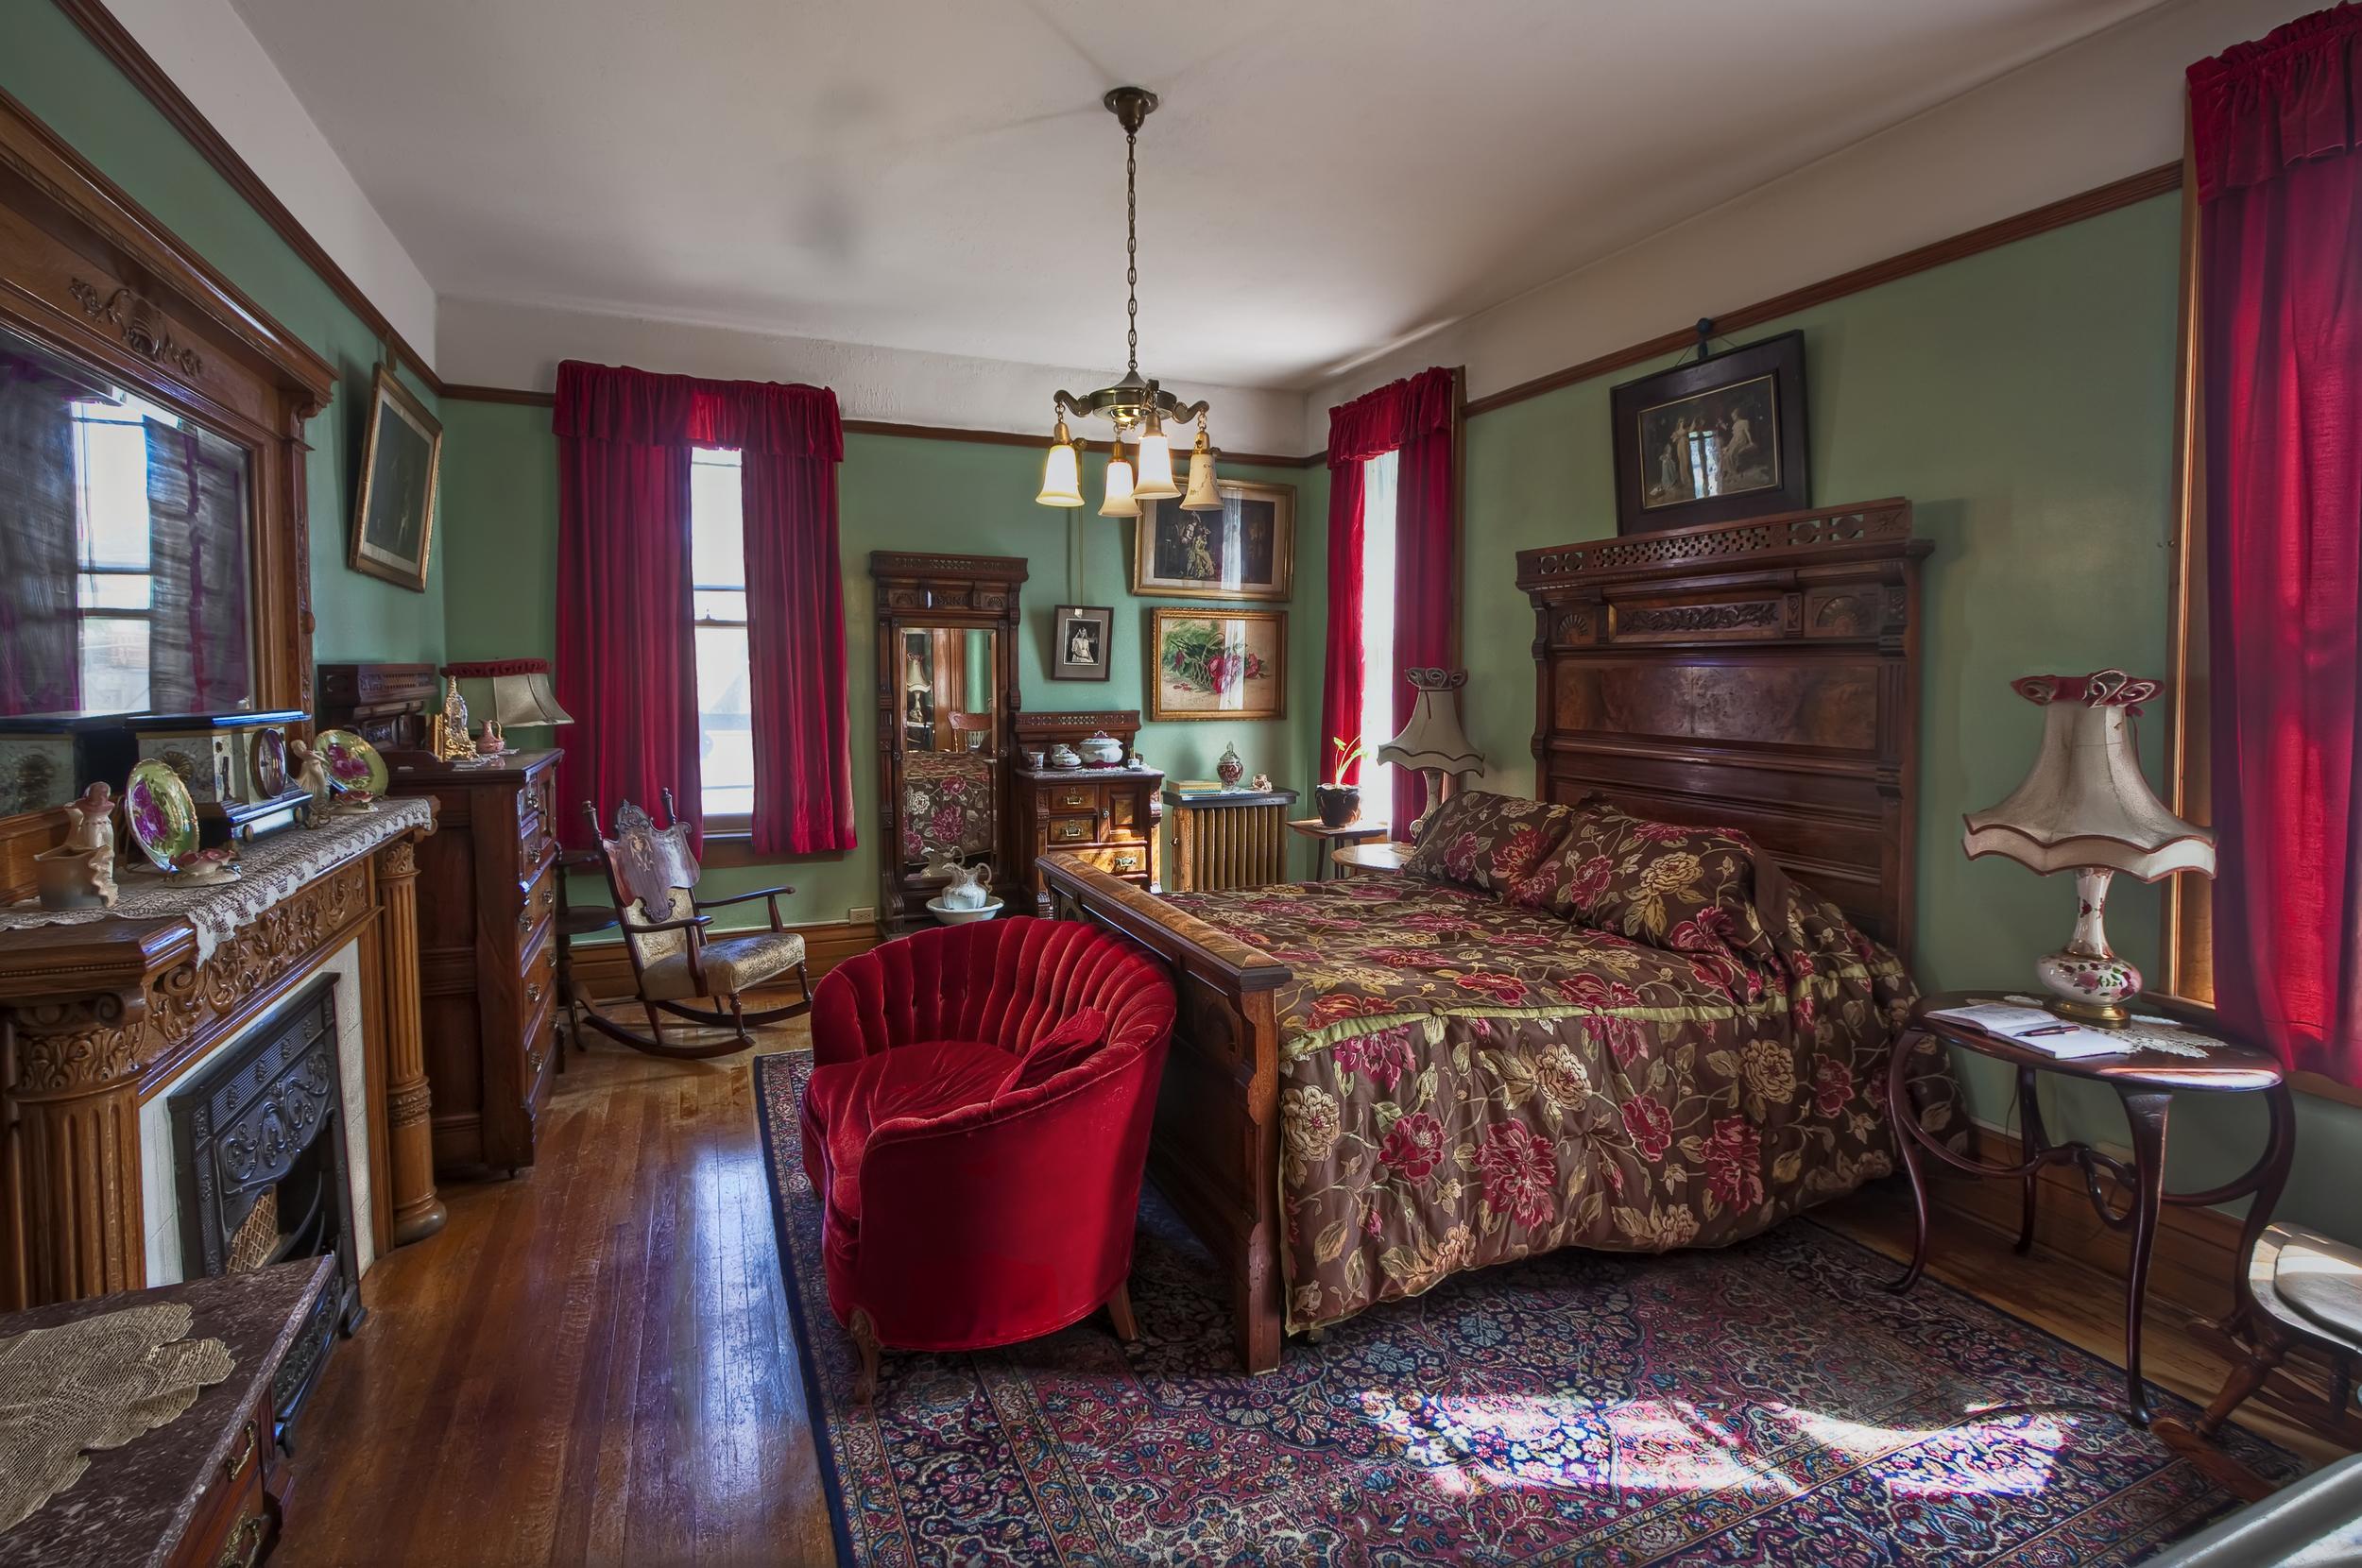 Bedroom, Copper King Mansion, the W.A. Clark home in Butte, Montana. c. Daniel Hagerman. Prints for sale at http://fineartamerica.com/art/all/copper+king+mansion/all.